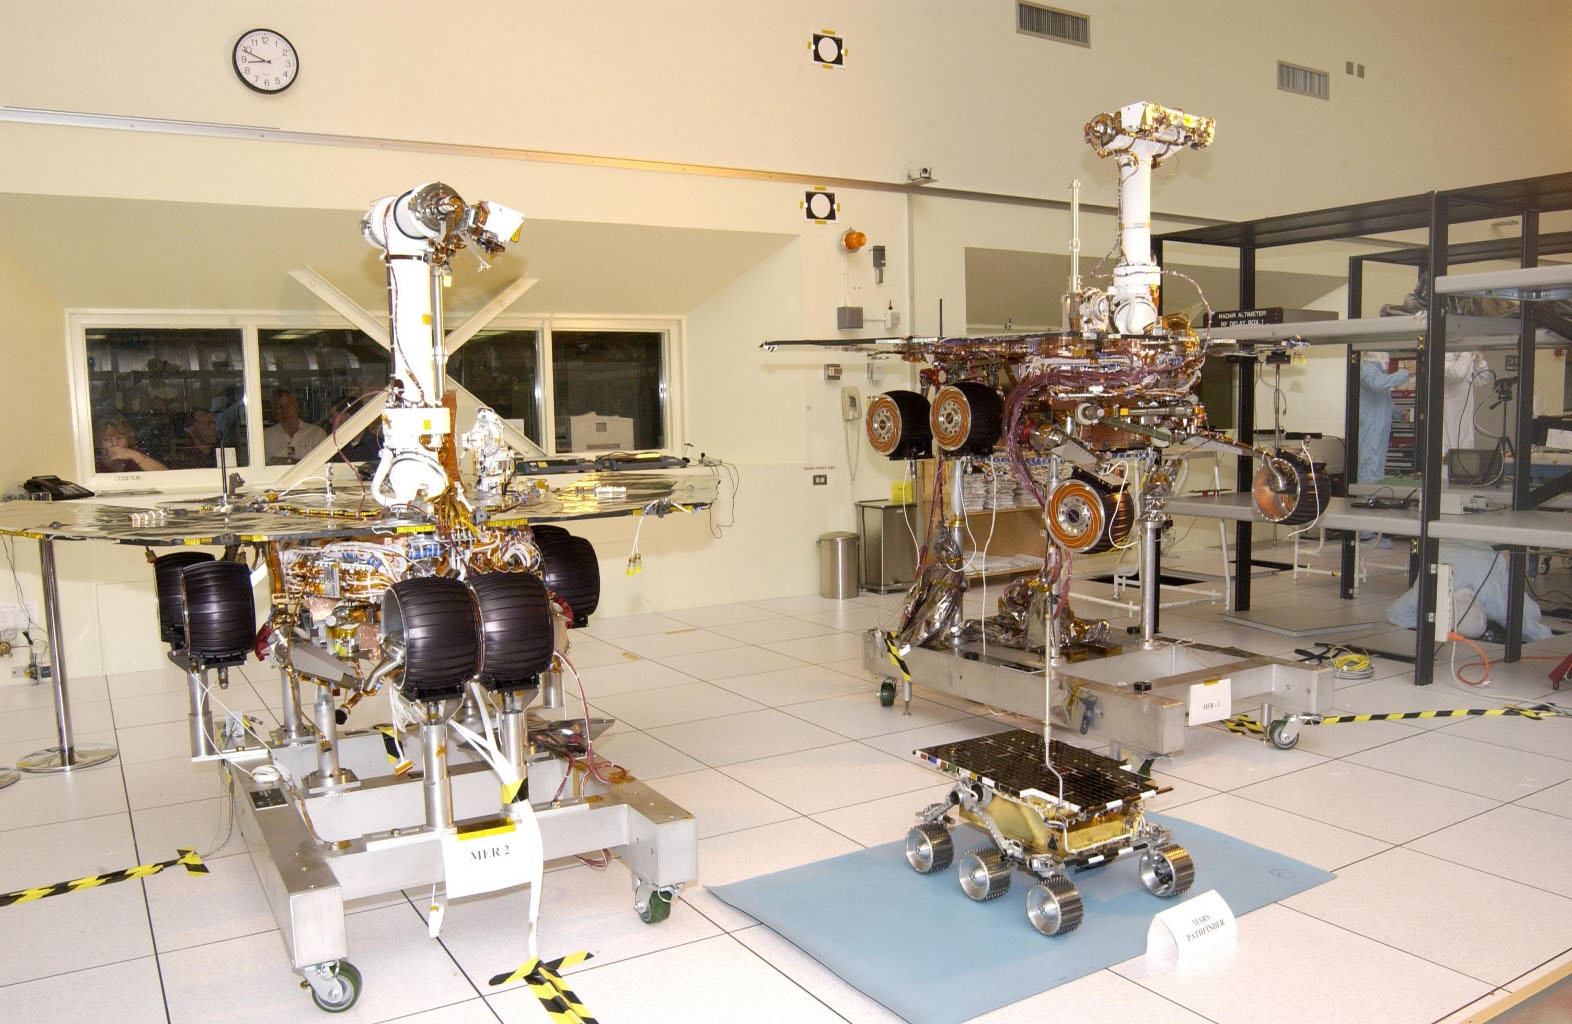 The twin rovers of NASA'a Mars Exploration Rover Mission pose with their groundbreaking predecessor, the flight spare of the Sojourner rover from NASA's 1997 Pathfinder mission.